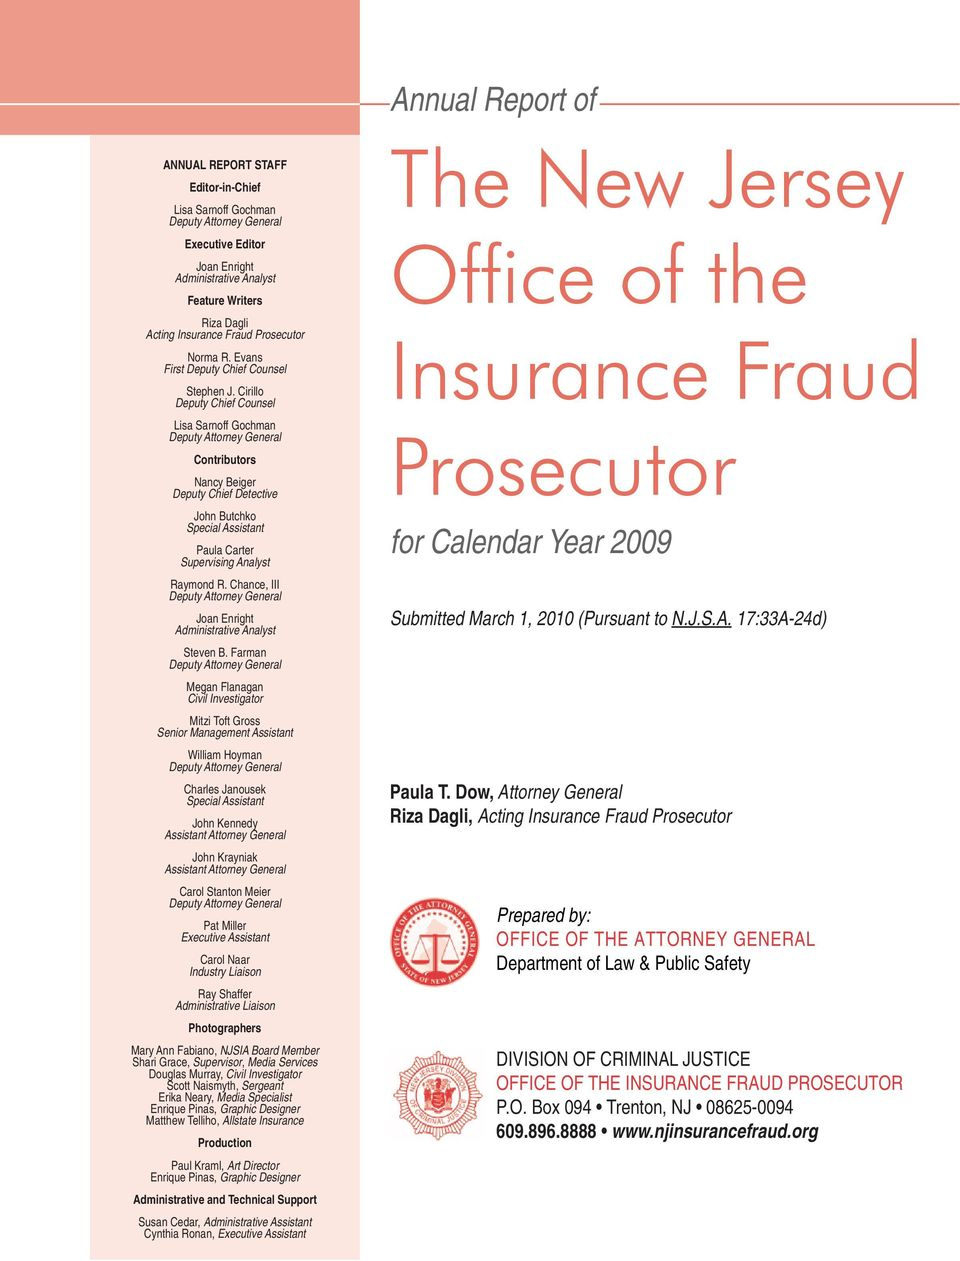 Cirillo Deputy Chief Counsel Lisa Sarnoff Gochman Deputy Attorney General Contributors Nancy Beiger Deputy Chief Detective John Butchko Special Assistant Paula Carter Supervising Analyst Raymond R.